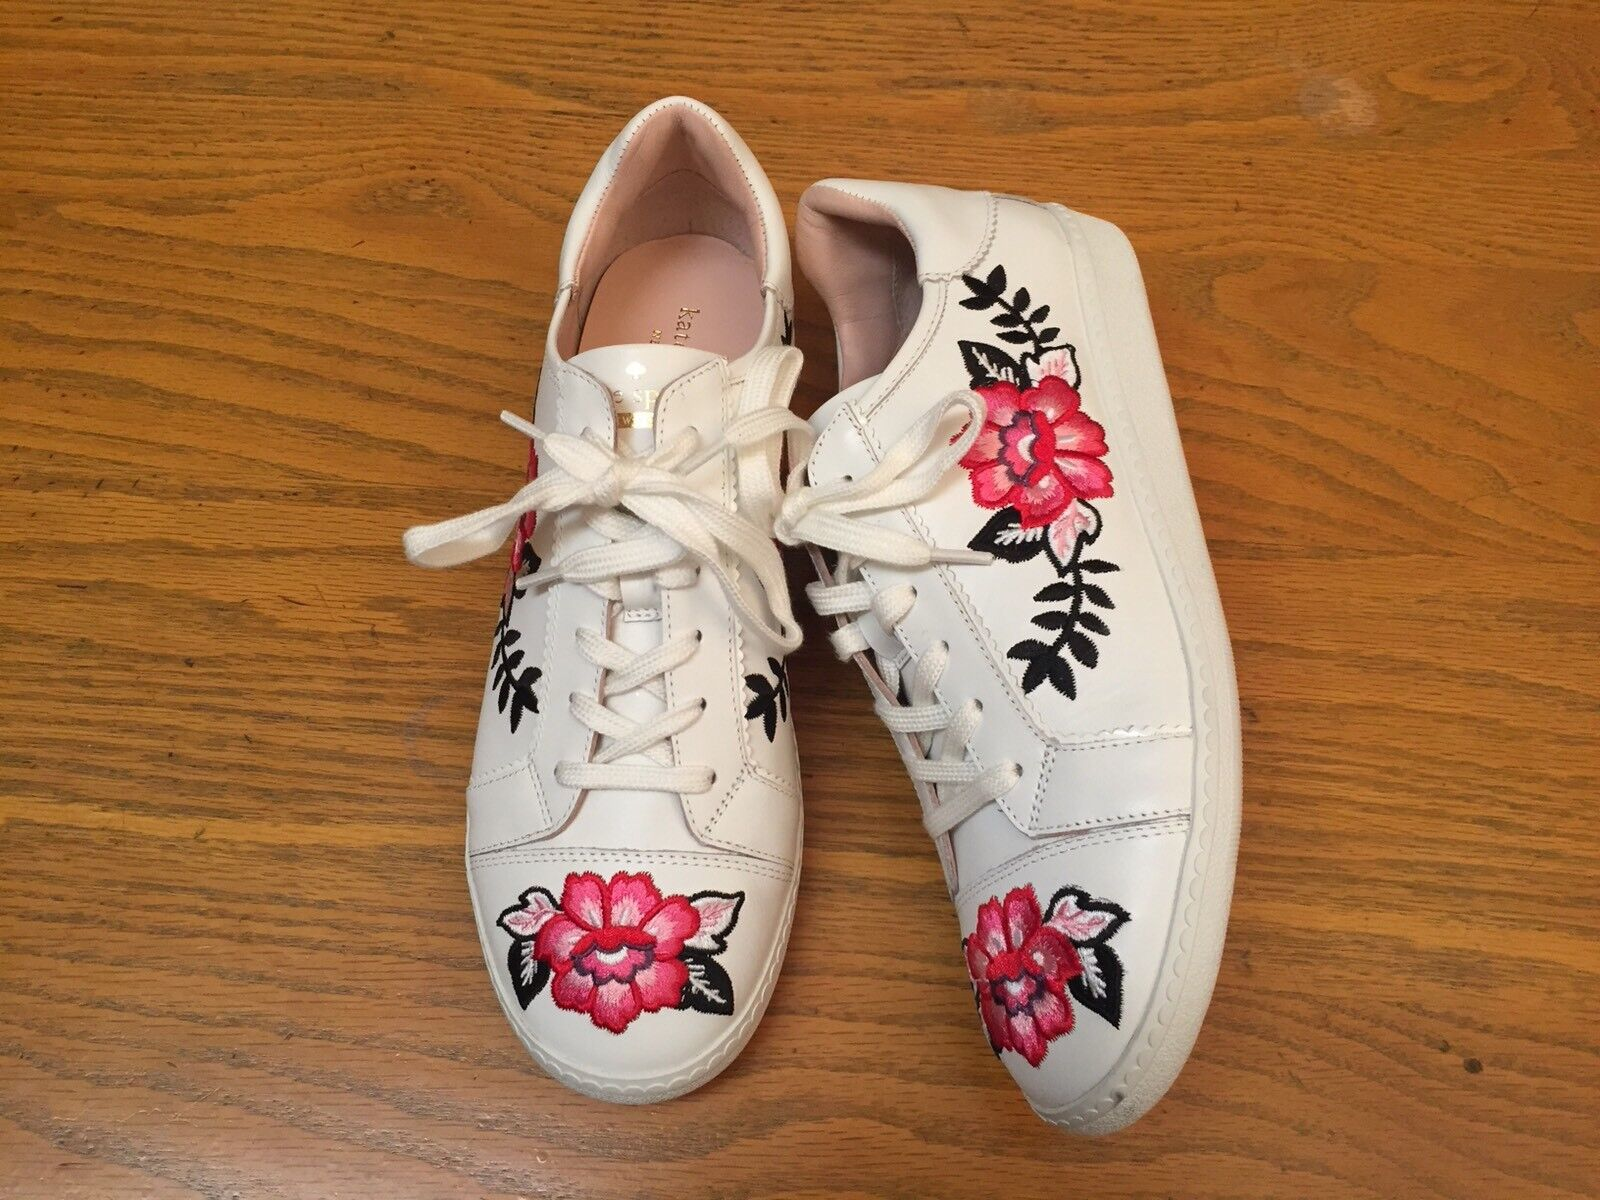 KATE SPADE NEW YORK EVERHART EMBROIDERED LEATHER SNEAKERS NEW SIZE 8.5